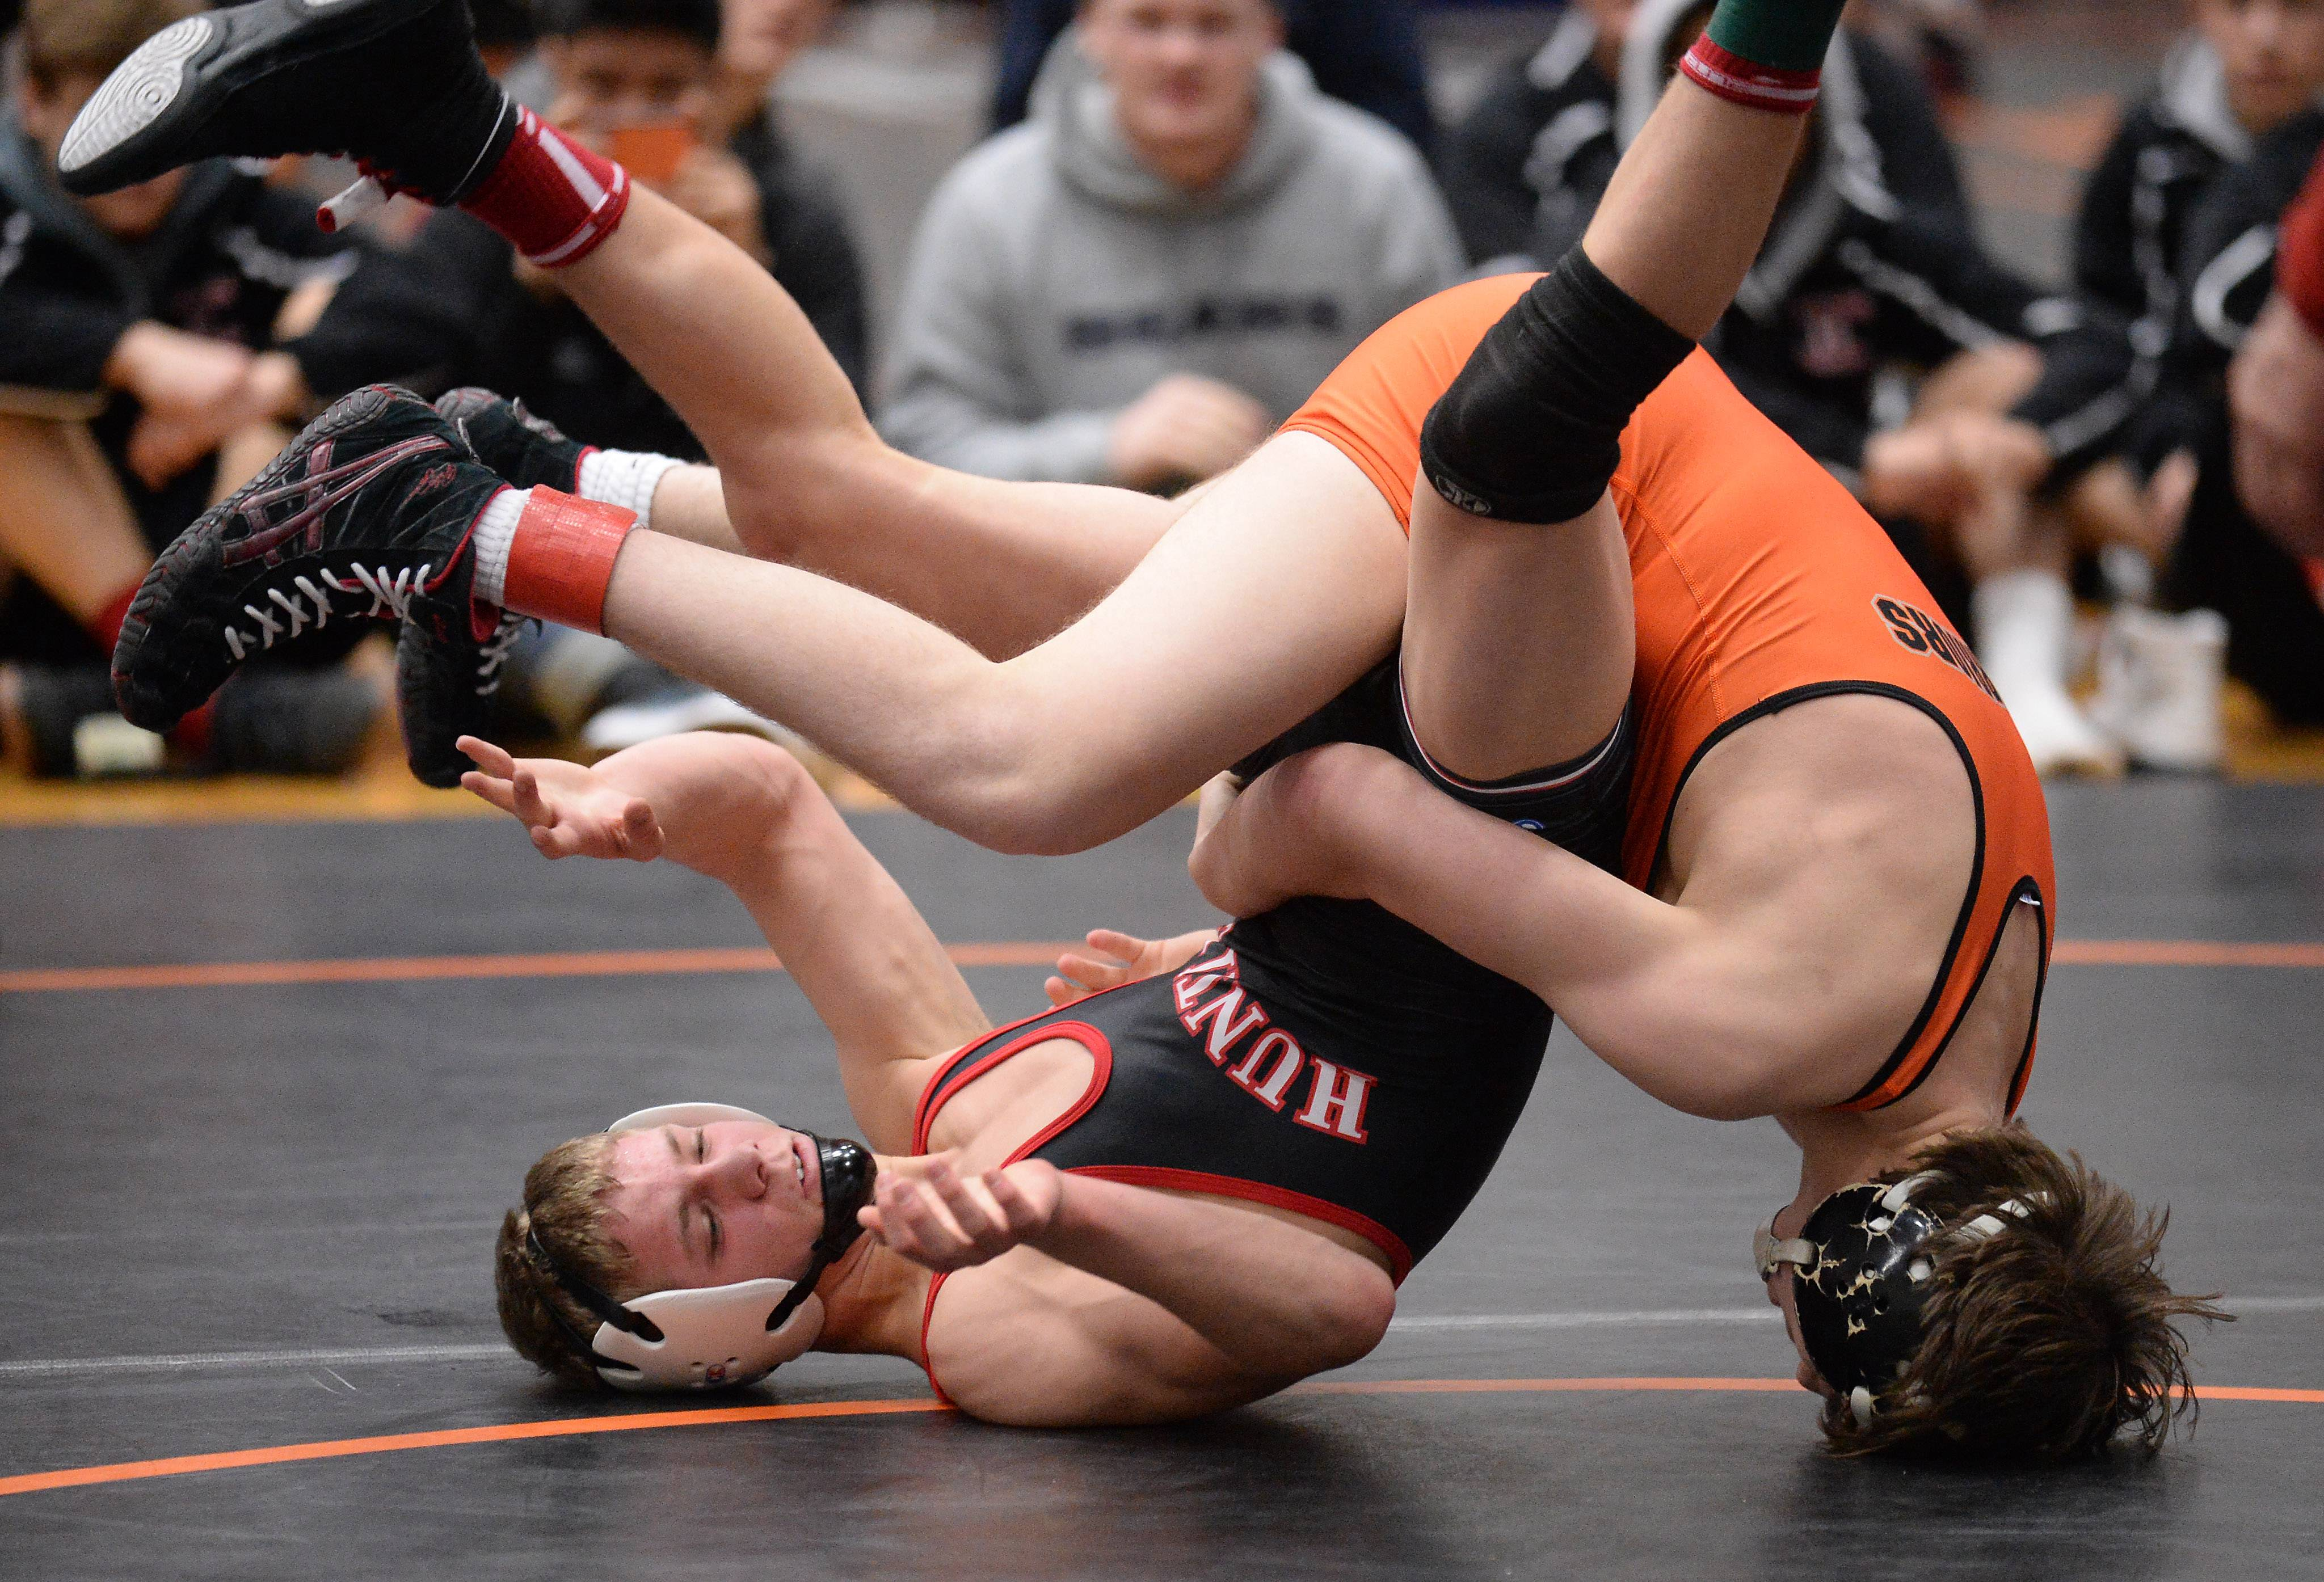 Britches Sikula of McHenry overpowers Josh Stenger of Huntley in the 113 weight class for the win at the 2015 Fox Valley Conference Wrestling Tournament at McHenry High School.